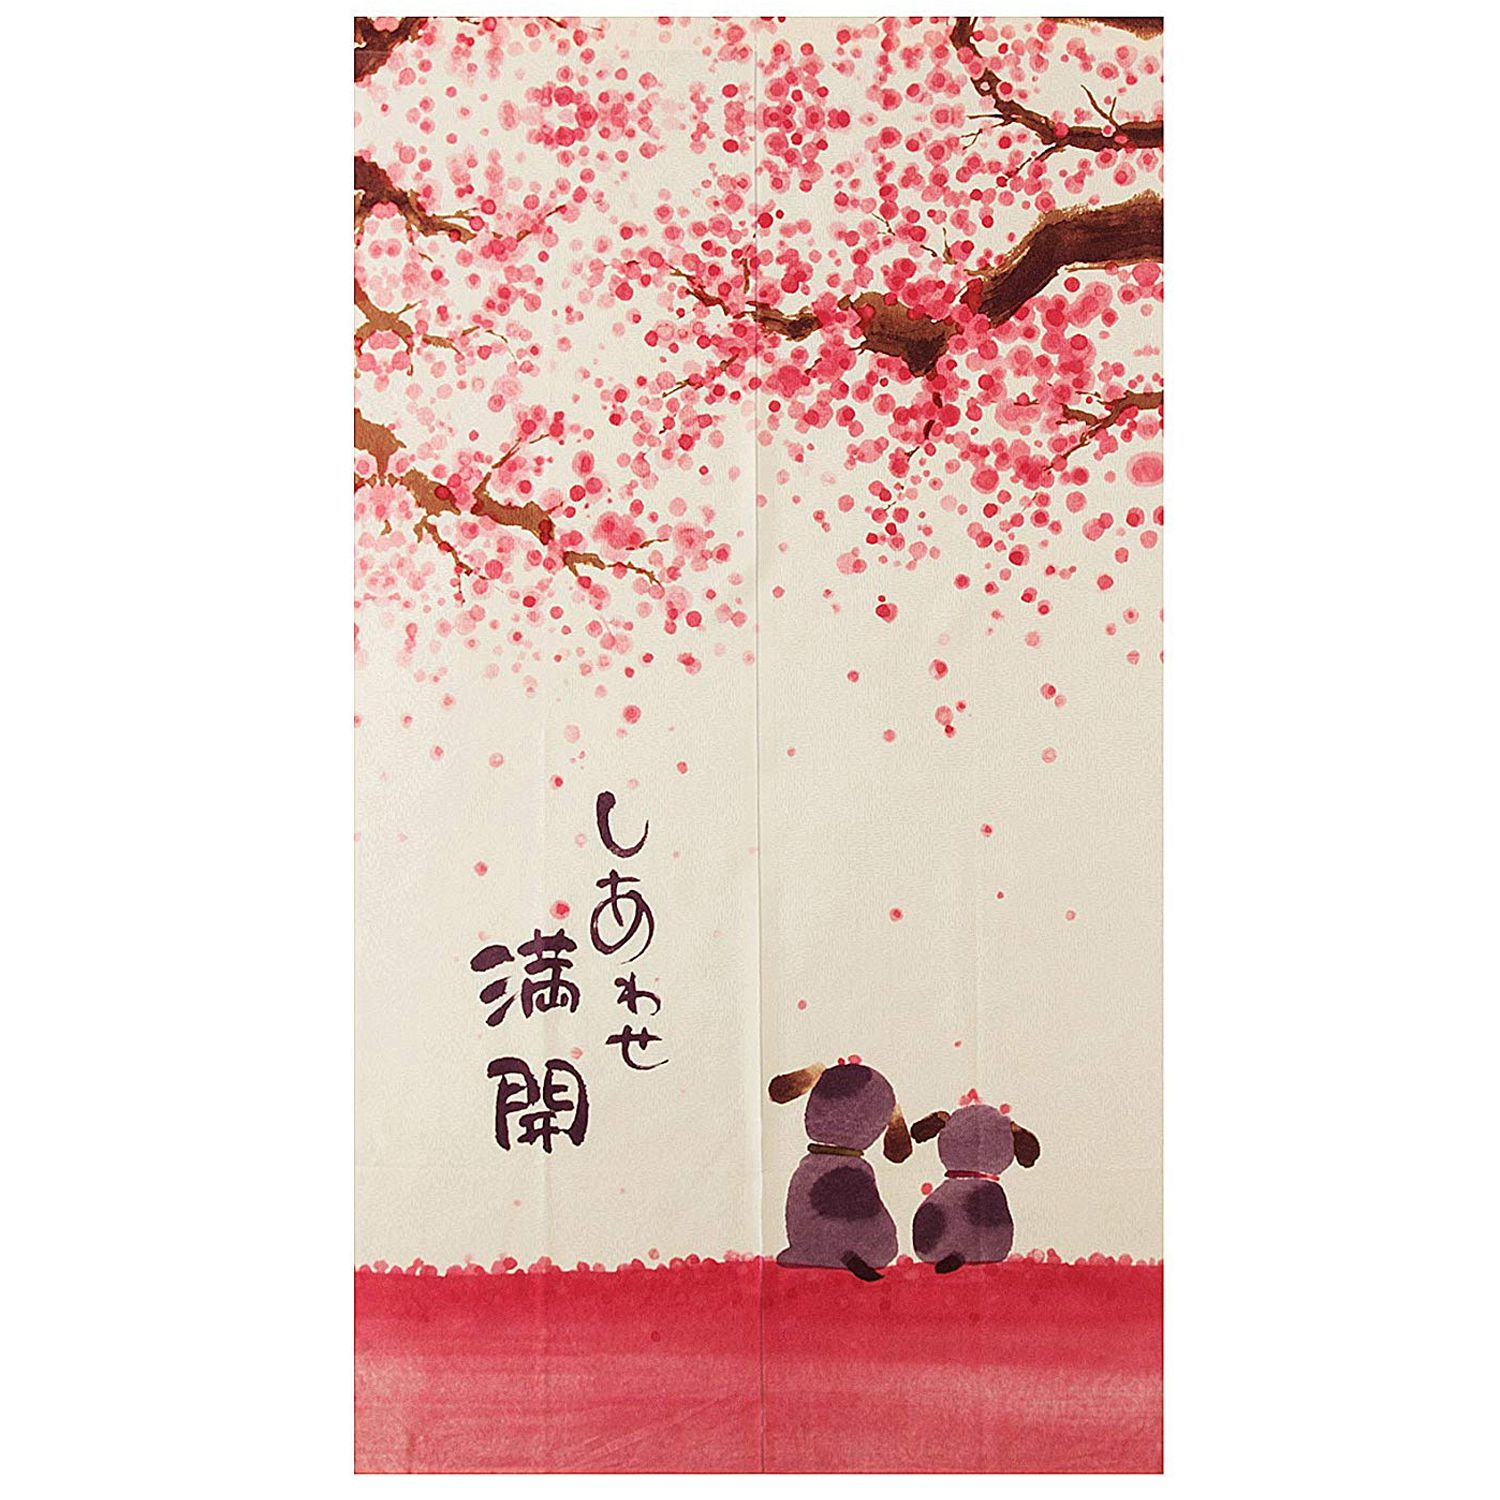 Promotion! Japanese Style Doorway Curtain 85X150Cm Happy Dogs Cherry Blossom